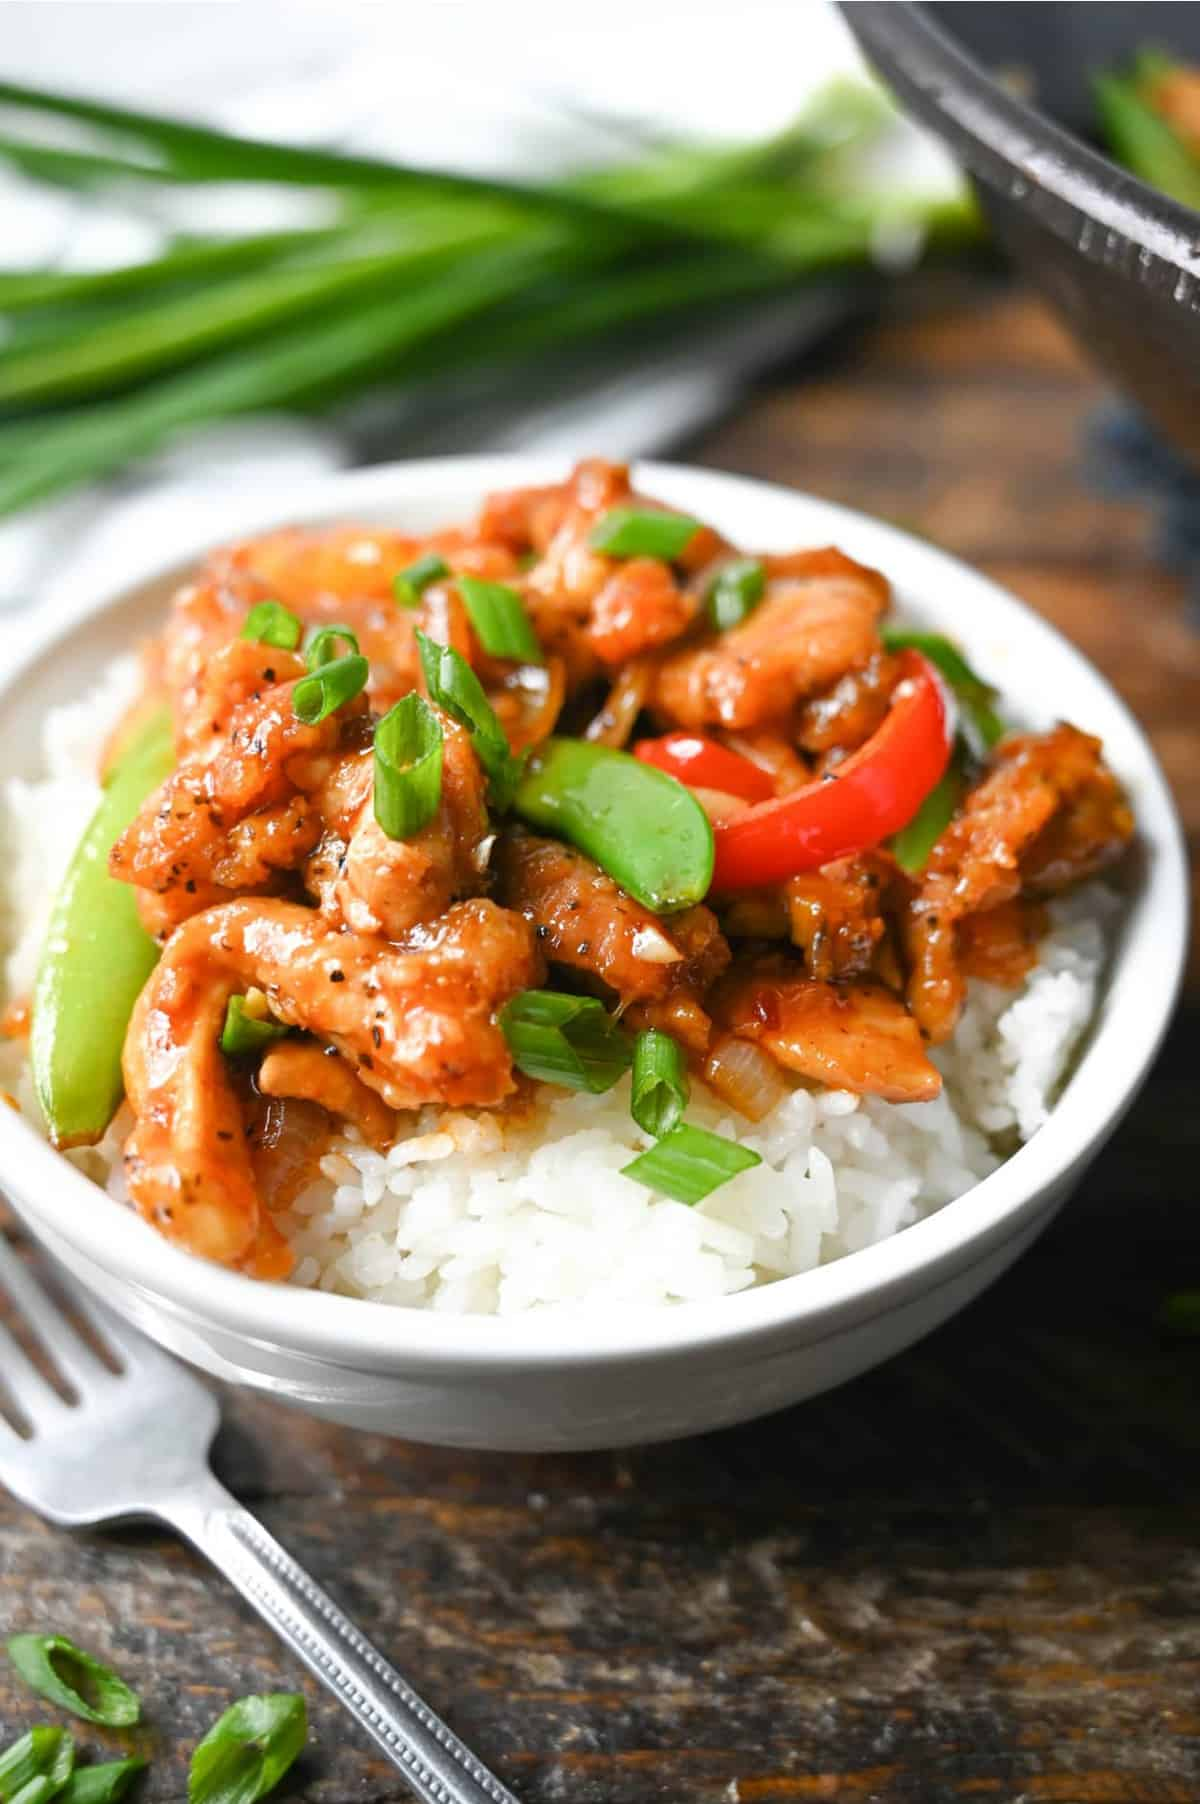 Sweet n spicy chicken stir fry piled on white rice in a white bowl.